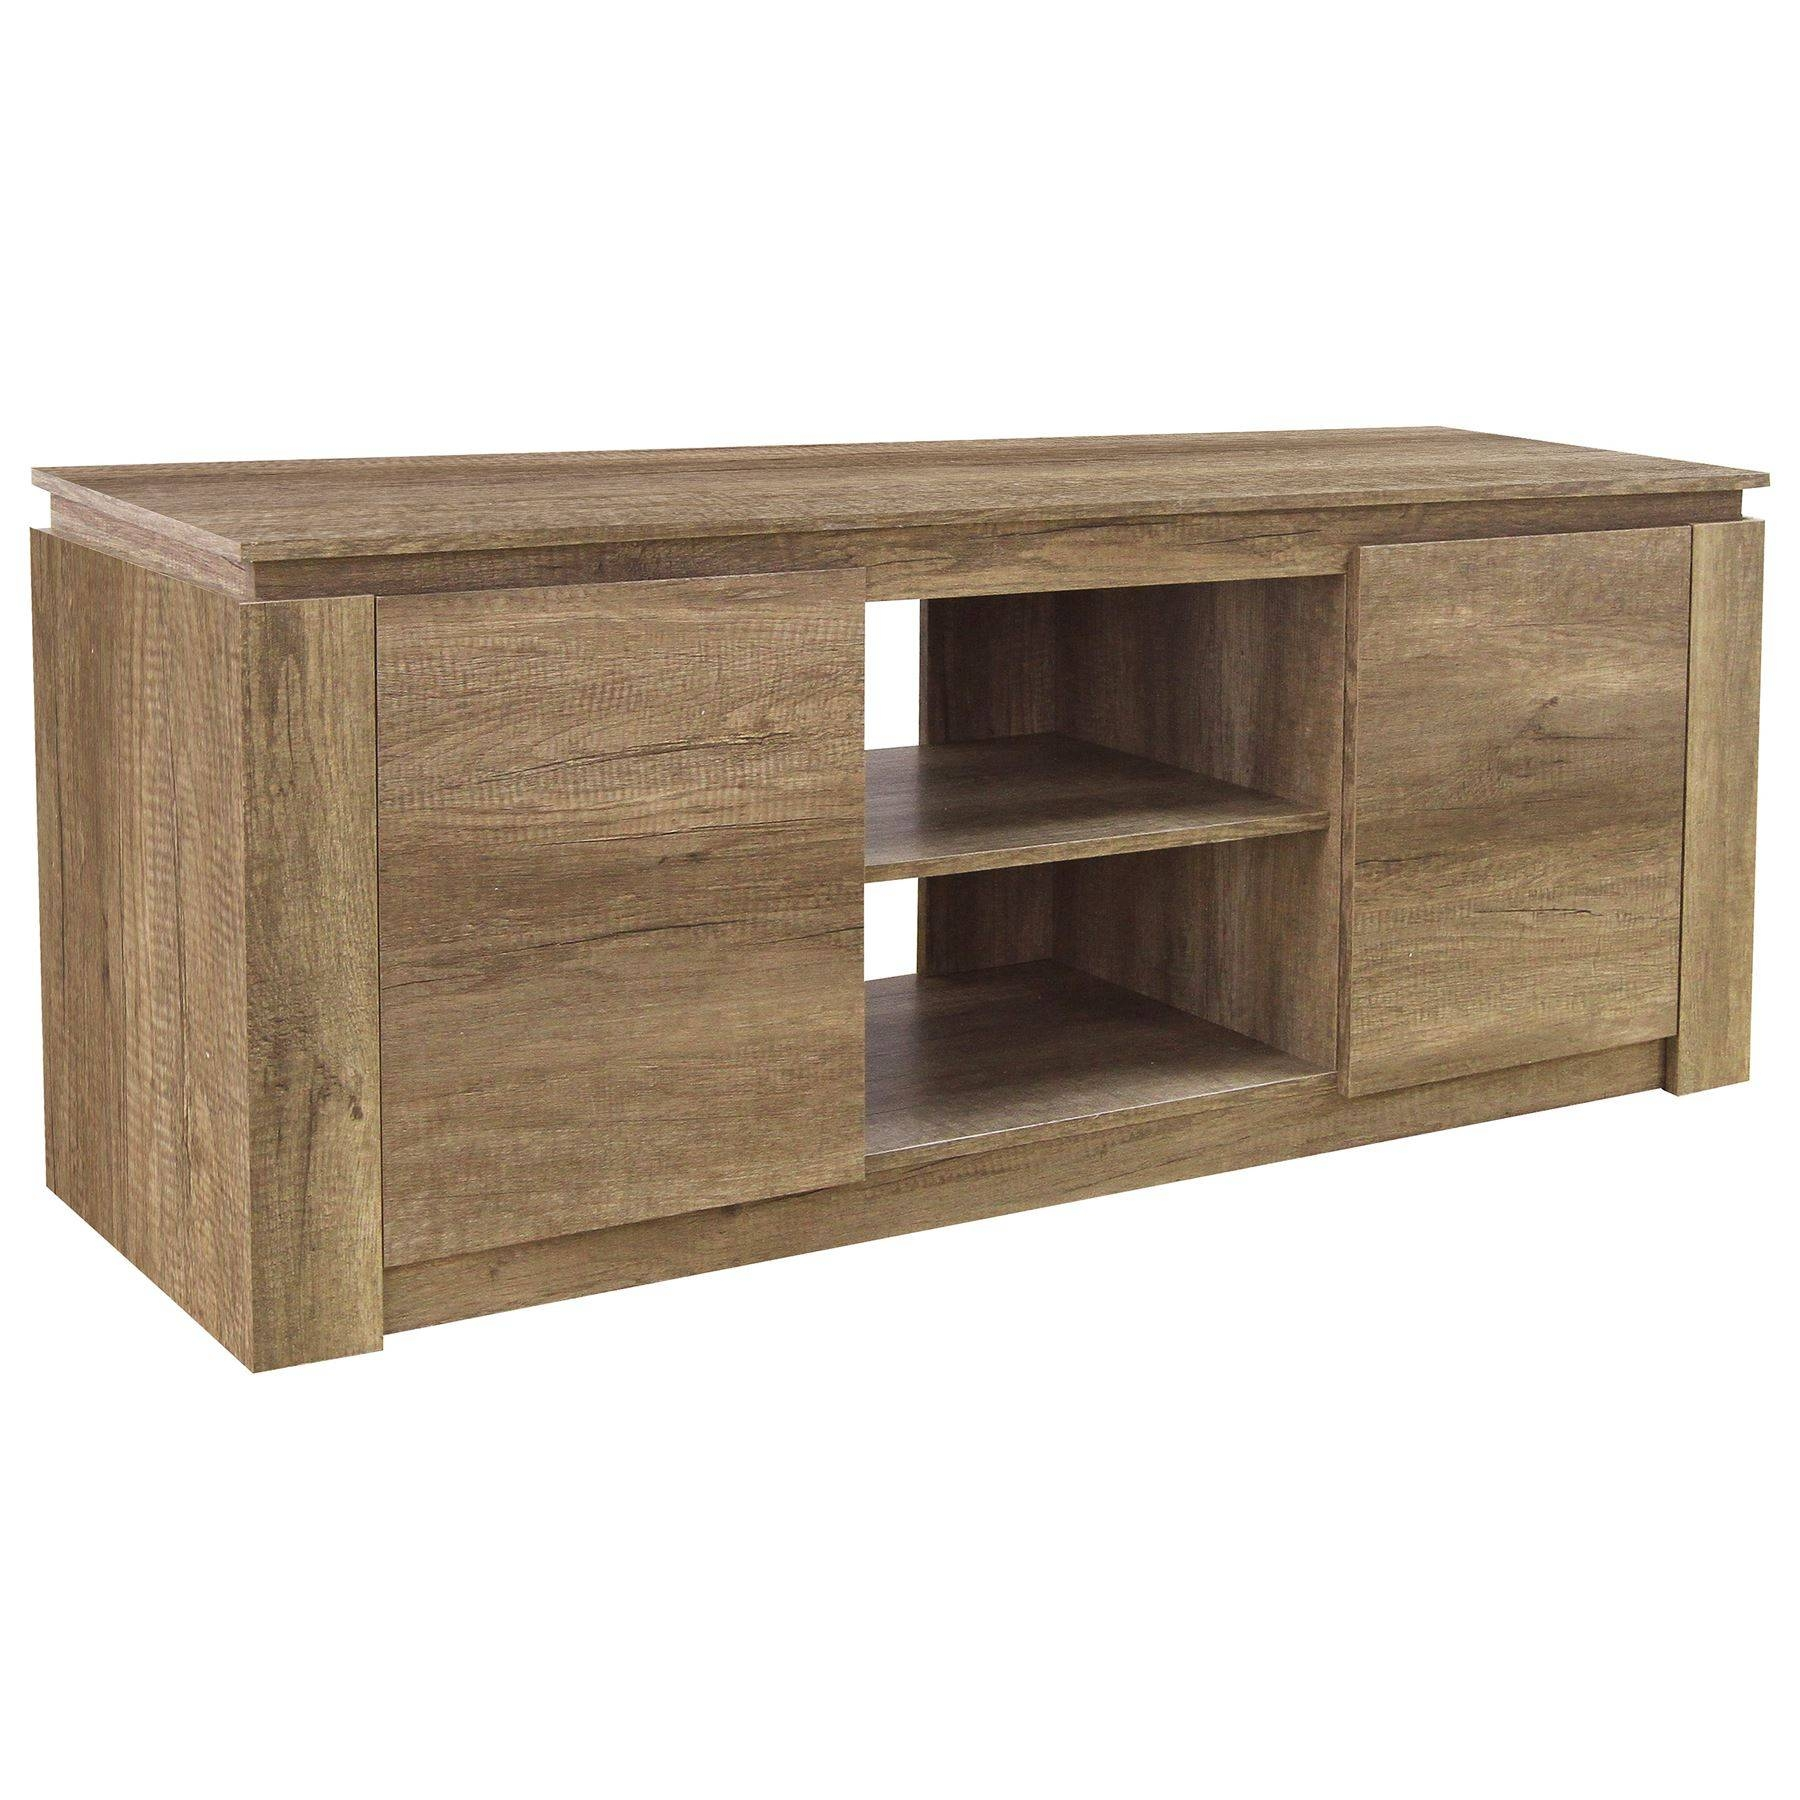 Oak Bookshelf Bookside Tv Unit Stand Coffee Lamp Table Sideboard in Sideboards and Tv Stands (Image 19 of 30)